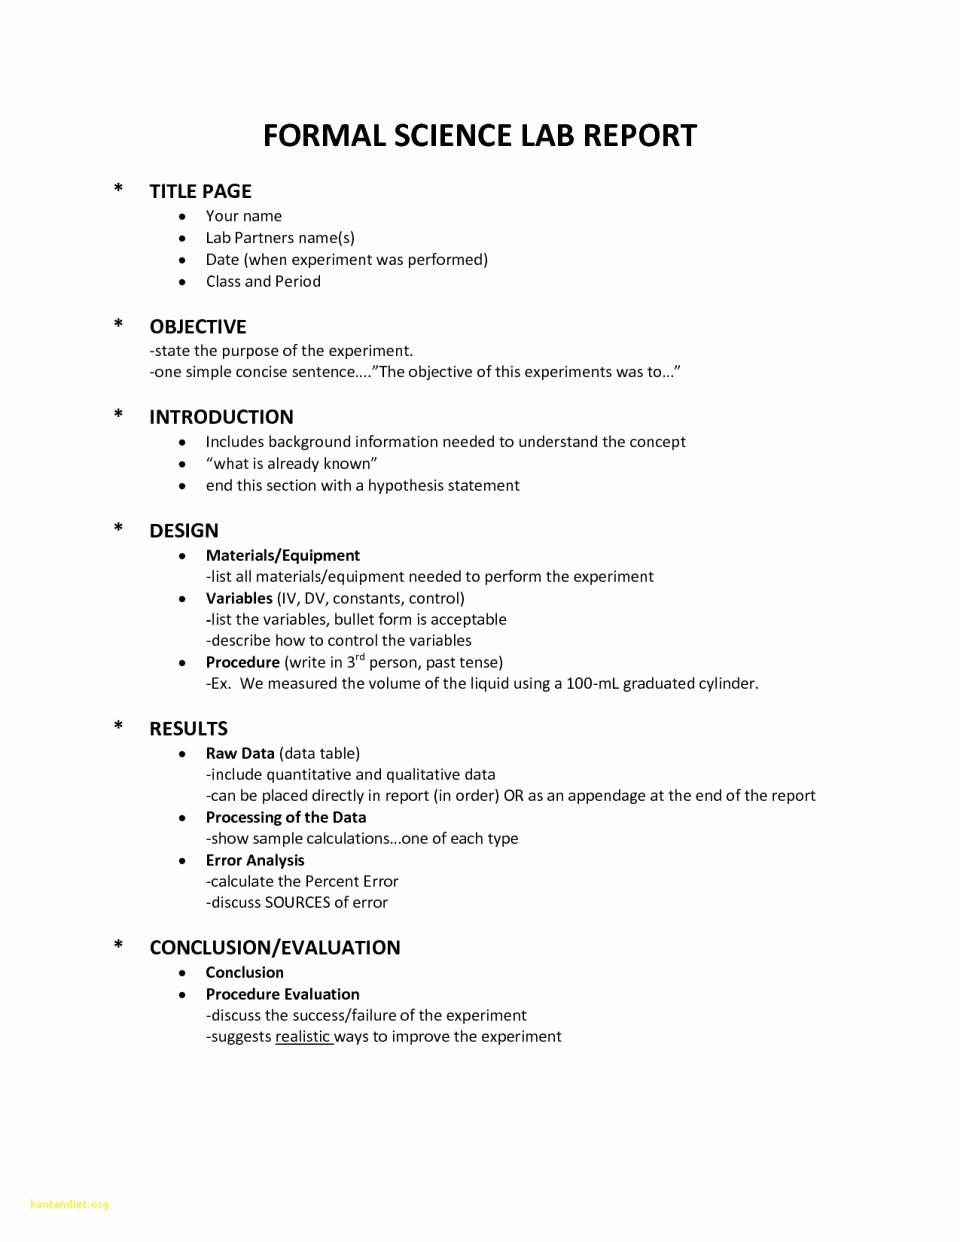 Scientific Lab Report Template Awesome Report Science Experiment Template New Lab Example College